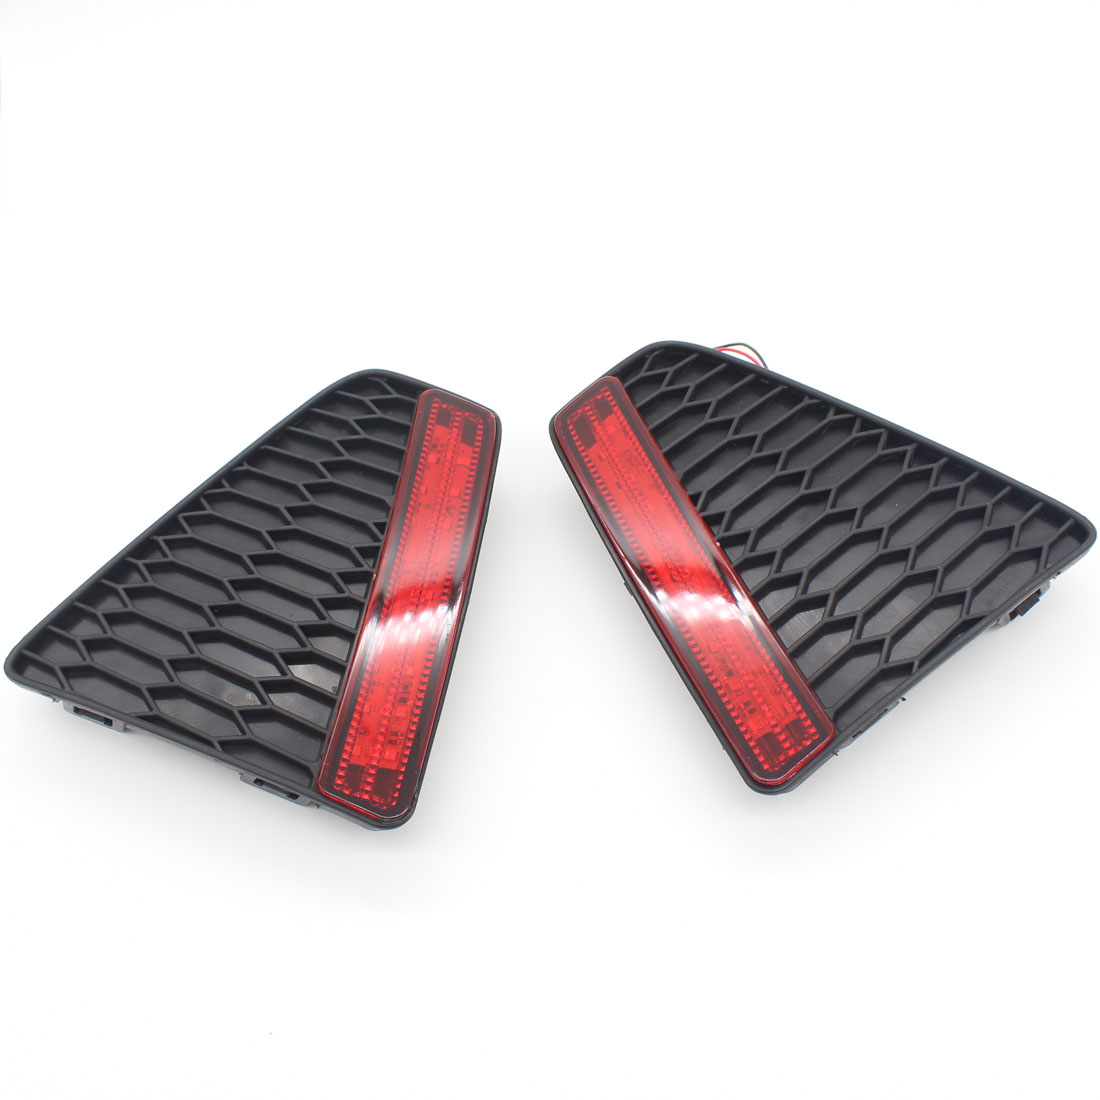 цена на Dongzhen Backup Tail Rear Bumper Lamp LED Reflector stop Brake light fog lamp Fit For Honda Fit 2014-2015 car styling